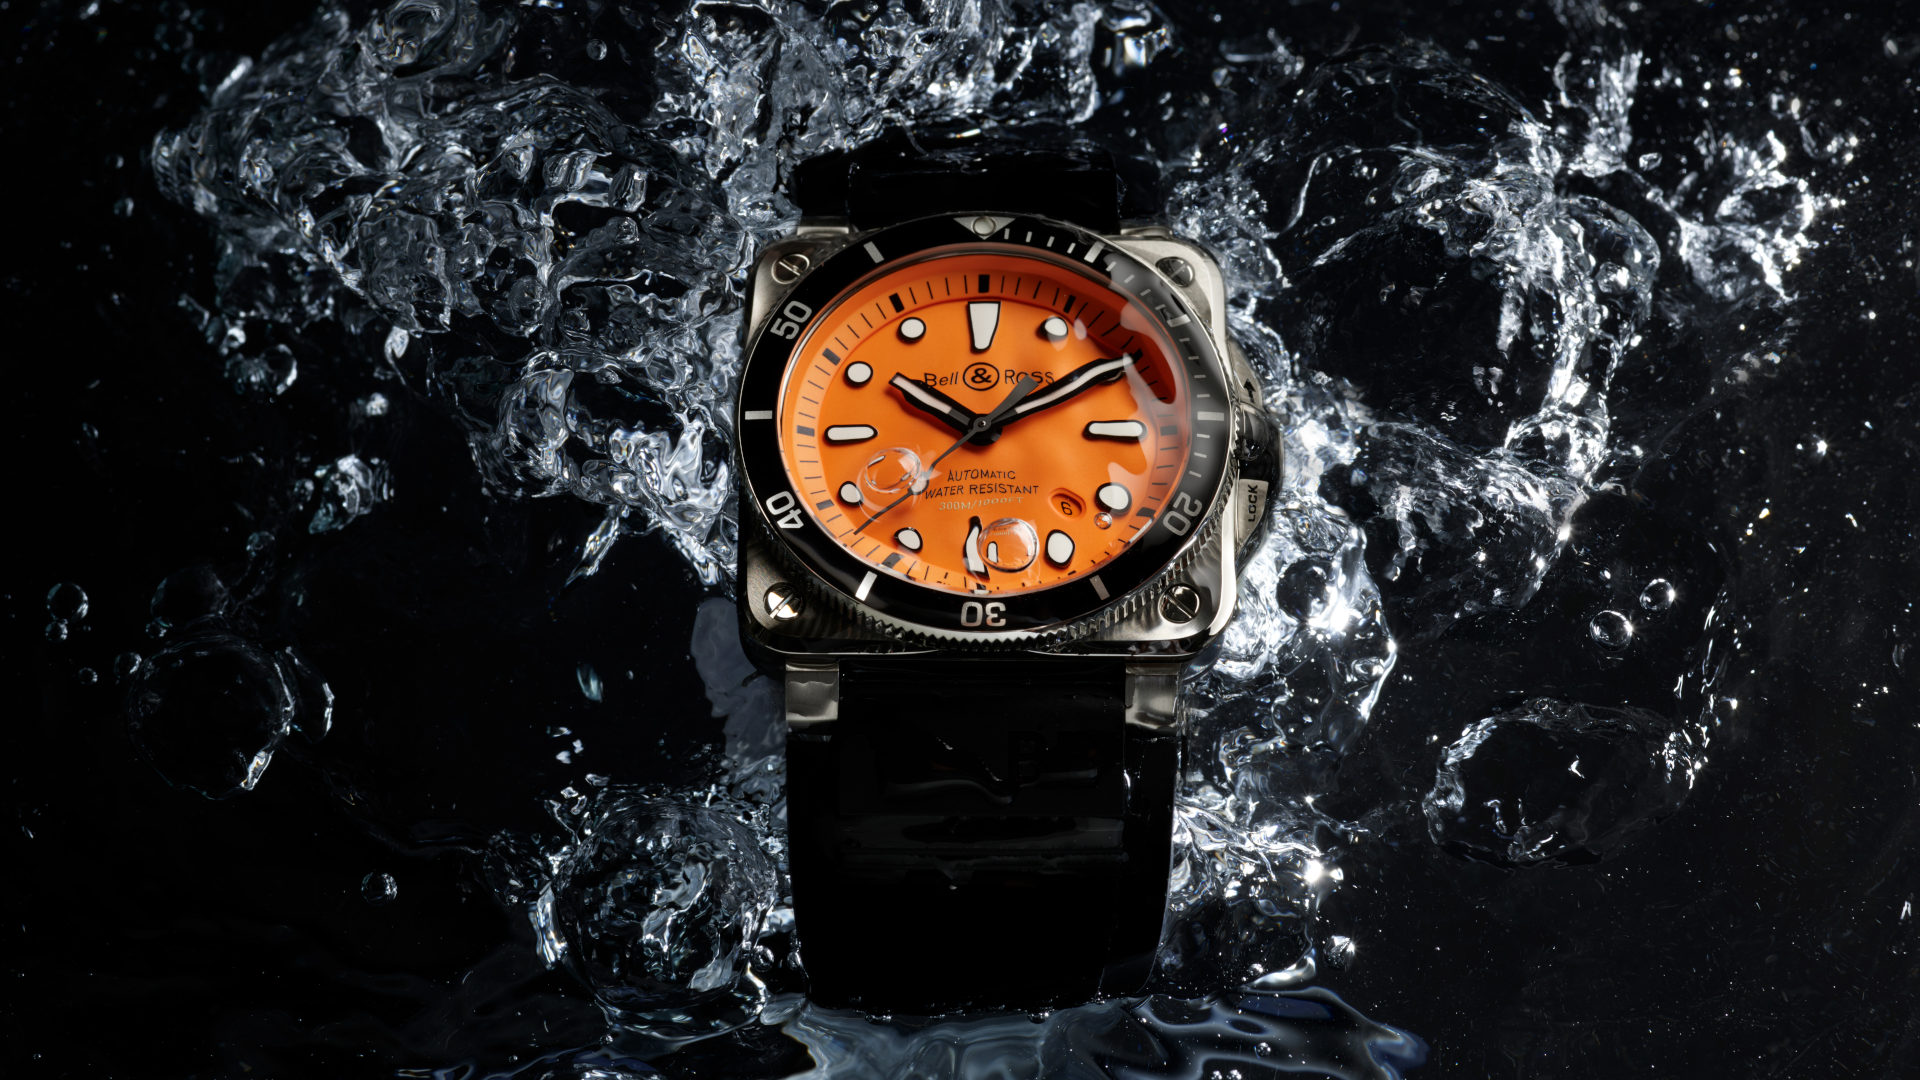 The latest Bell & Ross BR 03-92 Diver is available in an orange dial limited edition